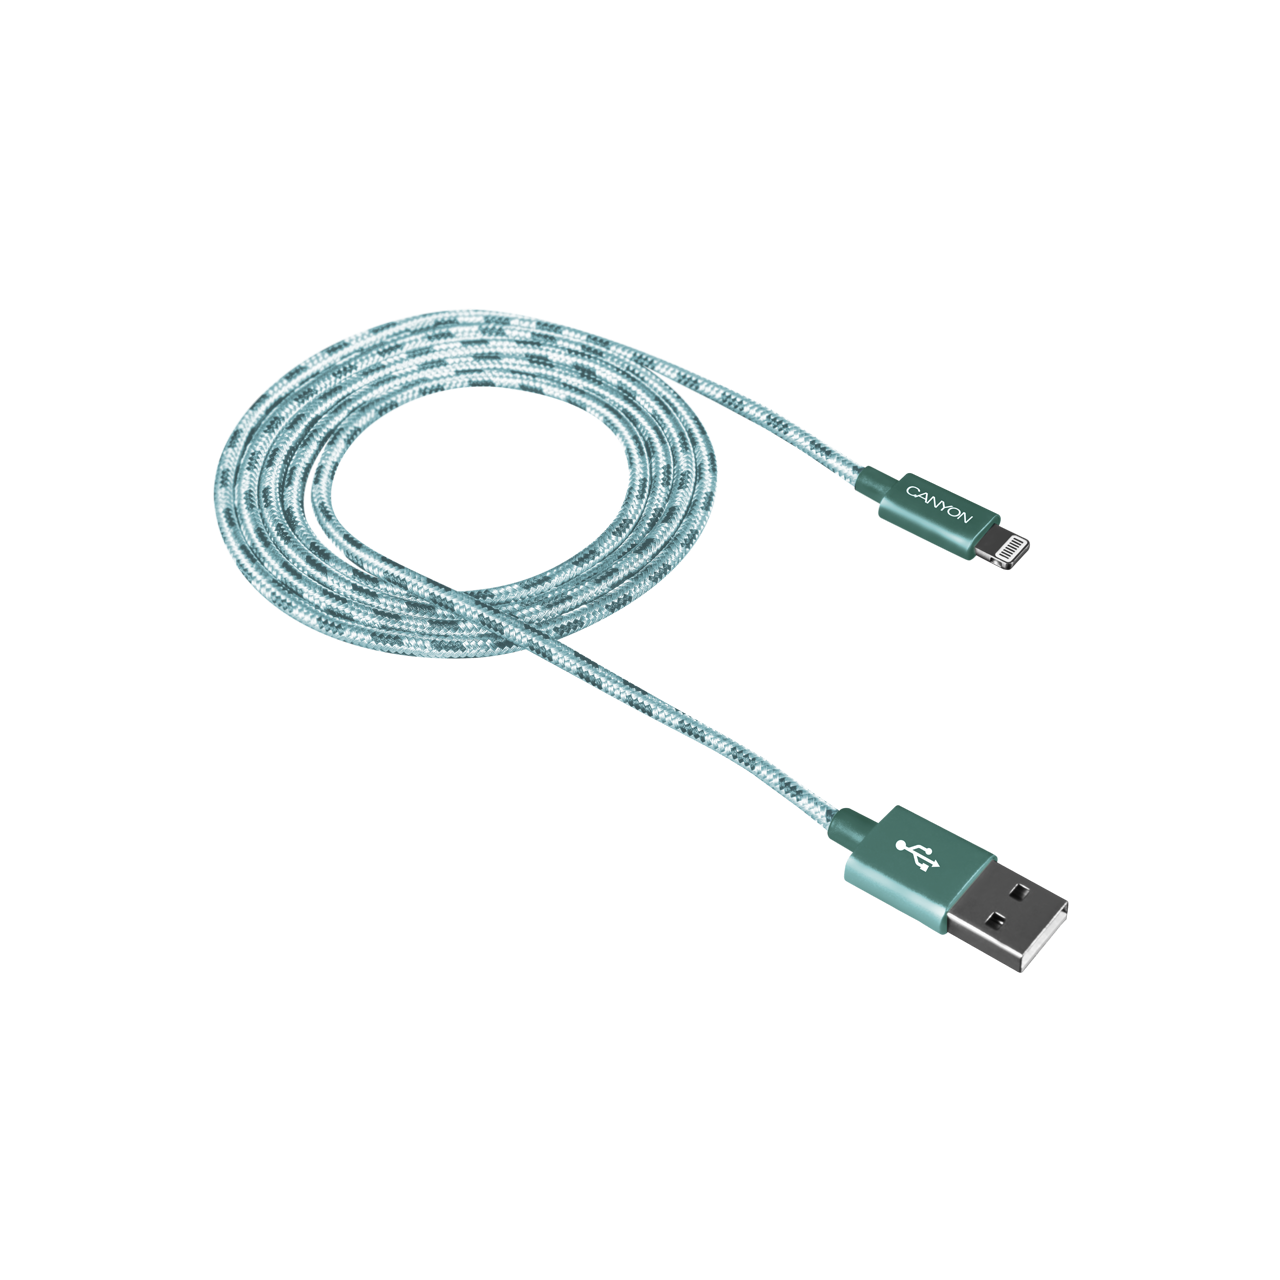 Braided 8-pin Lightning - USB cable for iPhone 5/6/7 (CNE-CFI3G ...